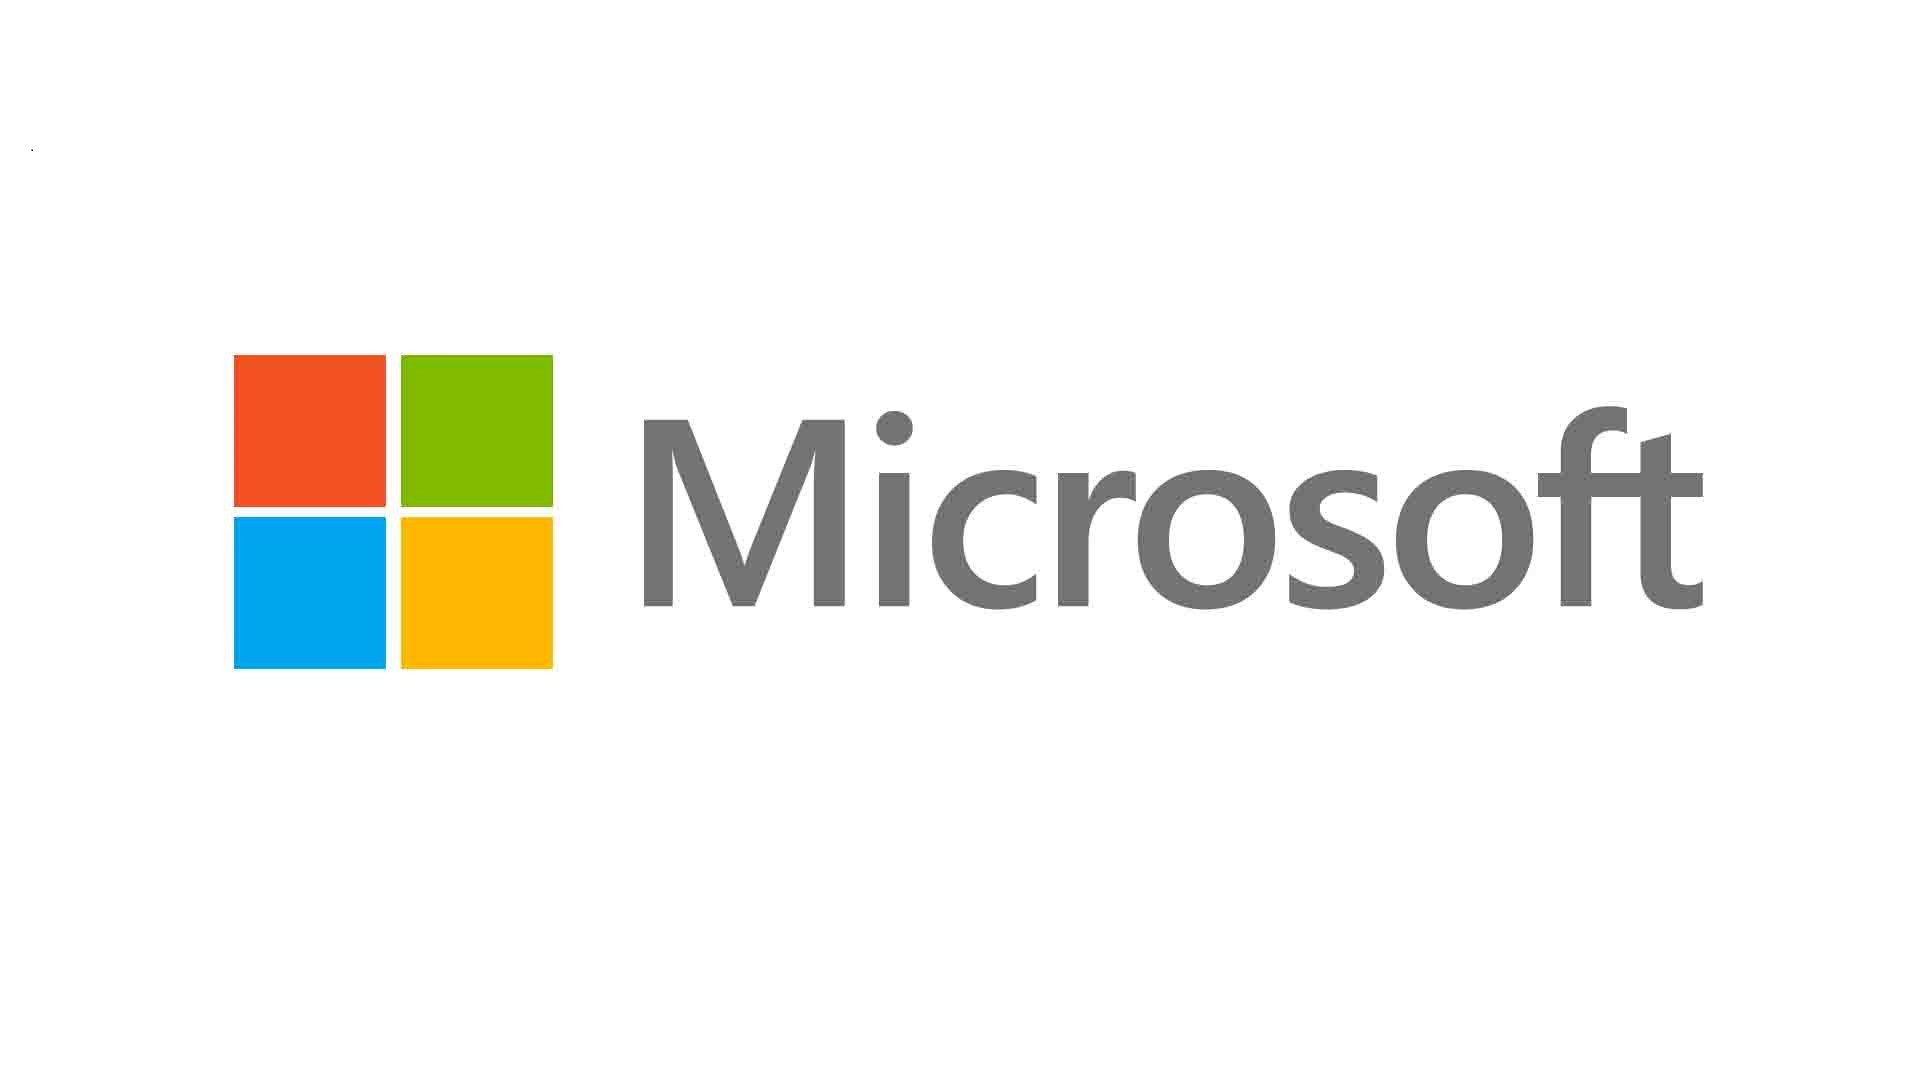 Trimestrale positiva per Microsoft, in crescita Cloud e Surface